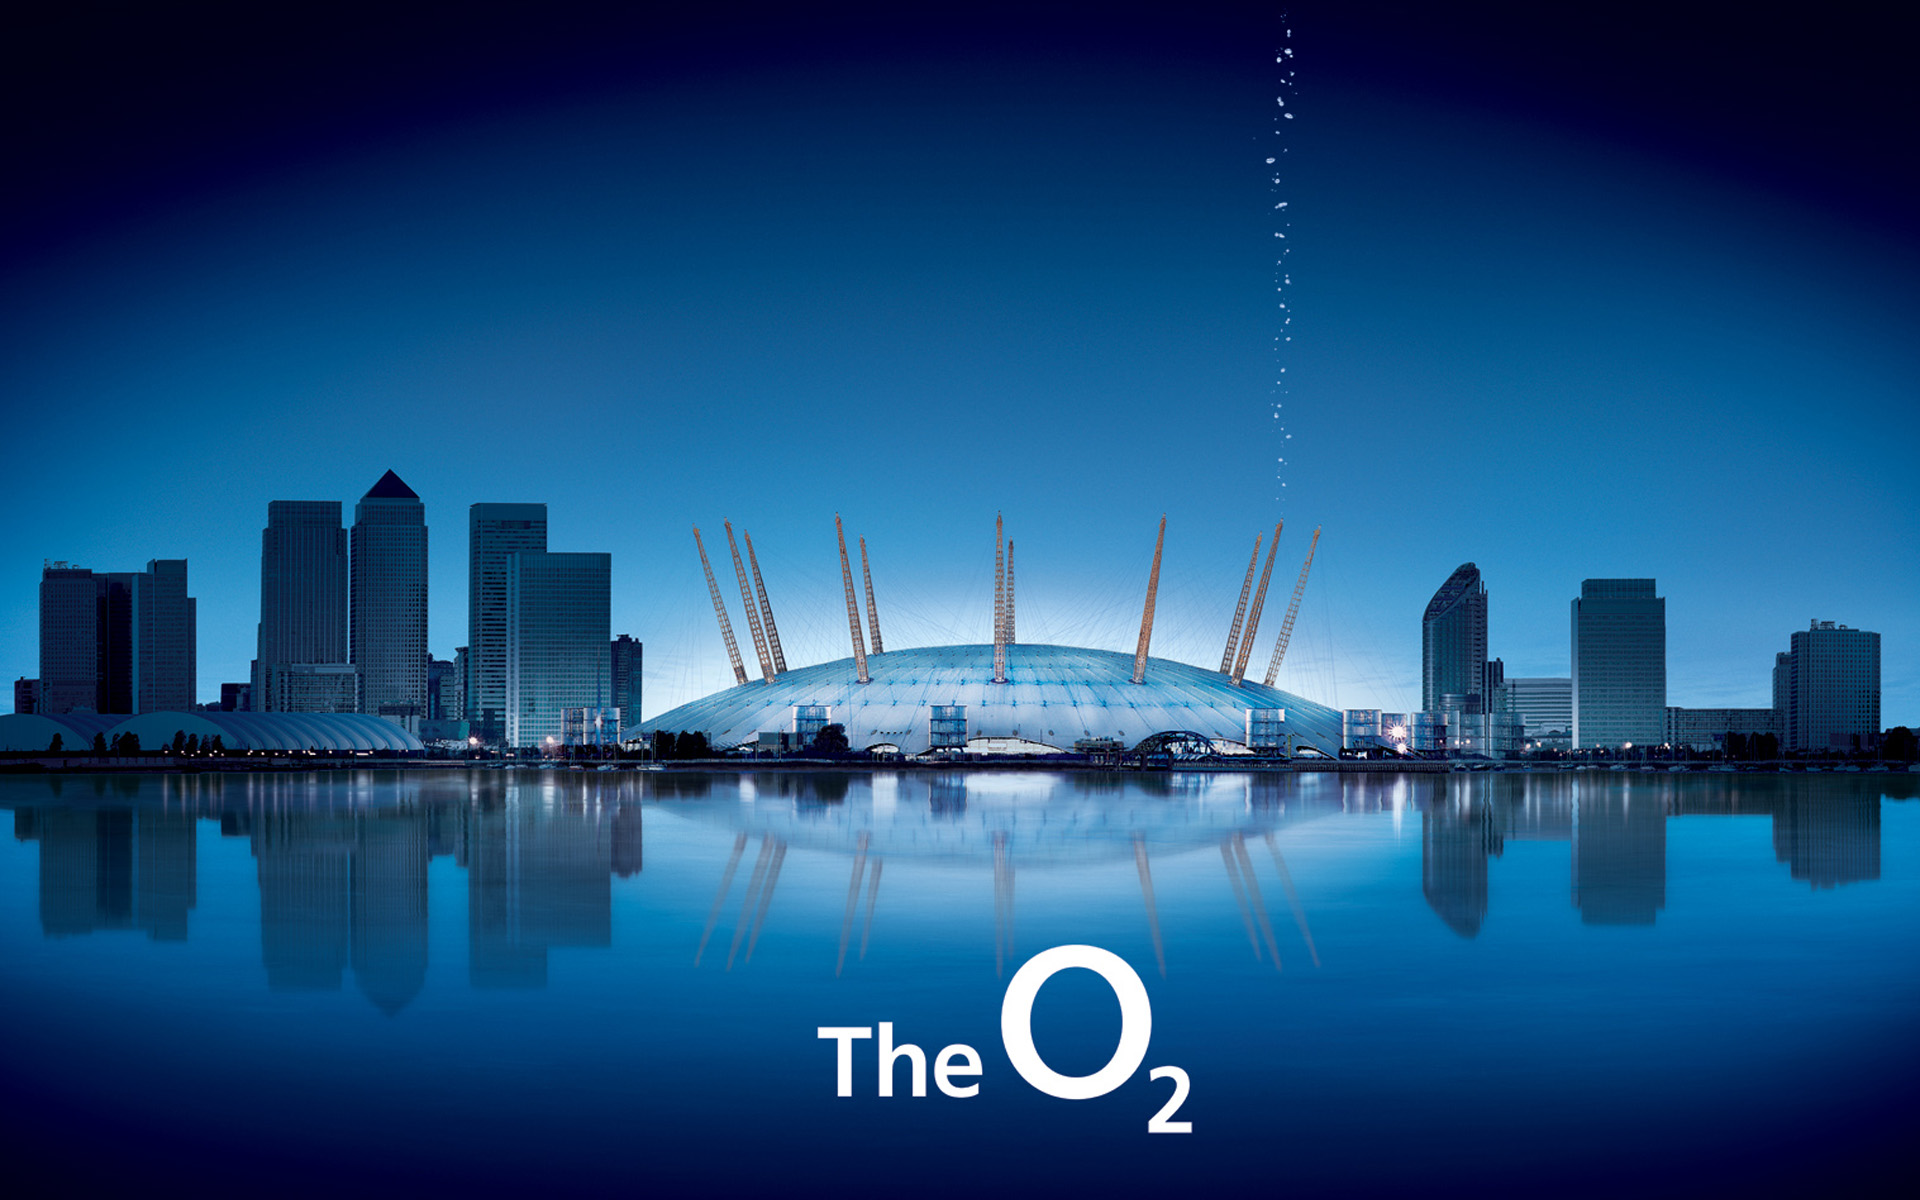 ikow_the_o2_arena_londonwide.jpg